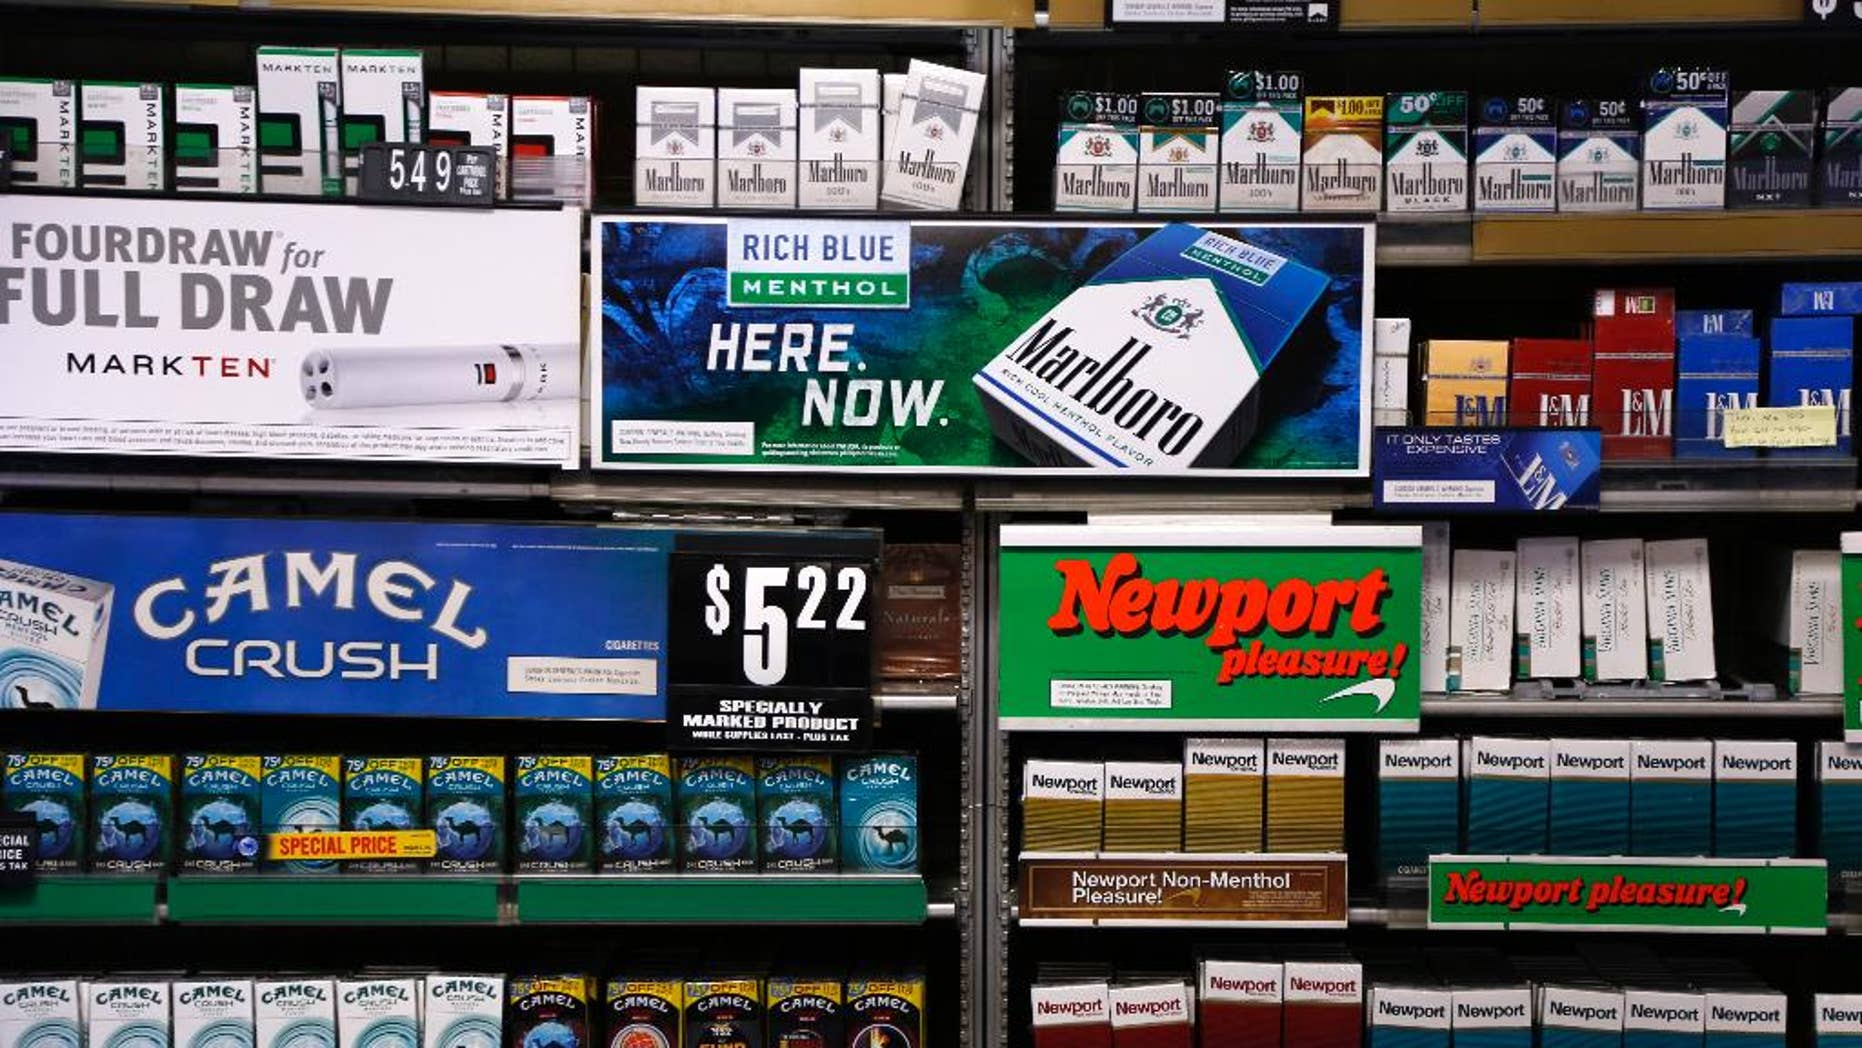 FILE - In this Friday, July 17, 2015 file photo, Camel and Newport cigarettes, both Reynolds American brands, are on display at a Smoker Friendly shop in Pittsburgh. British American Tobacco offered Friday, Oct. 21 2016 to buy Reynolds American Inc. in a $47 billion cash-and-stock deal that would create the world's largest publicly traded tobacco company and bring together brands like Camel, Dunhill, and Newport. The logic of the deal, analysts say, is to make up for a decline in the number of smokers in their home markets of the U.S. and Britain as they look to developing markets and new products, such as electronic cigarettes. (AP Photo/Gene J. Puskar, file)